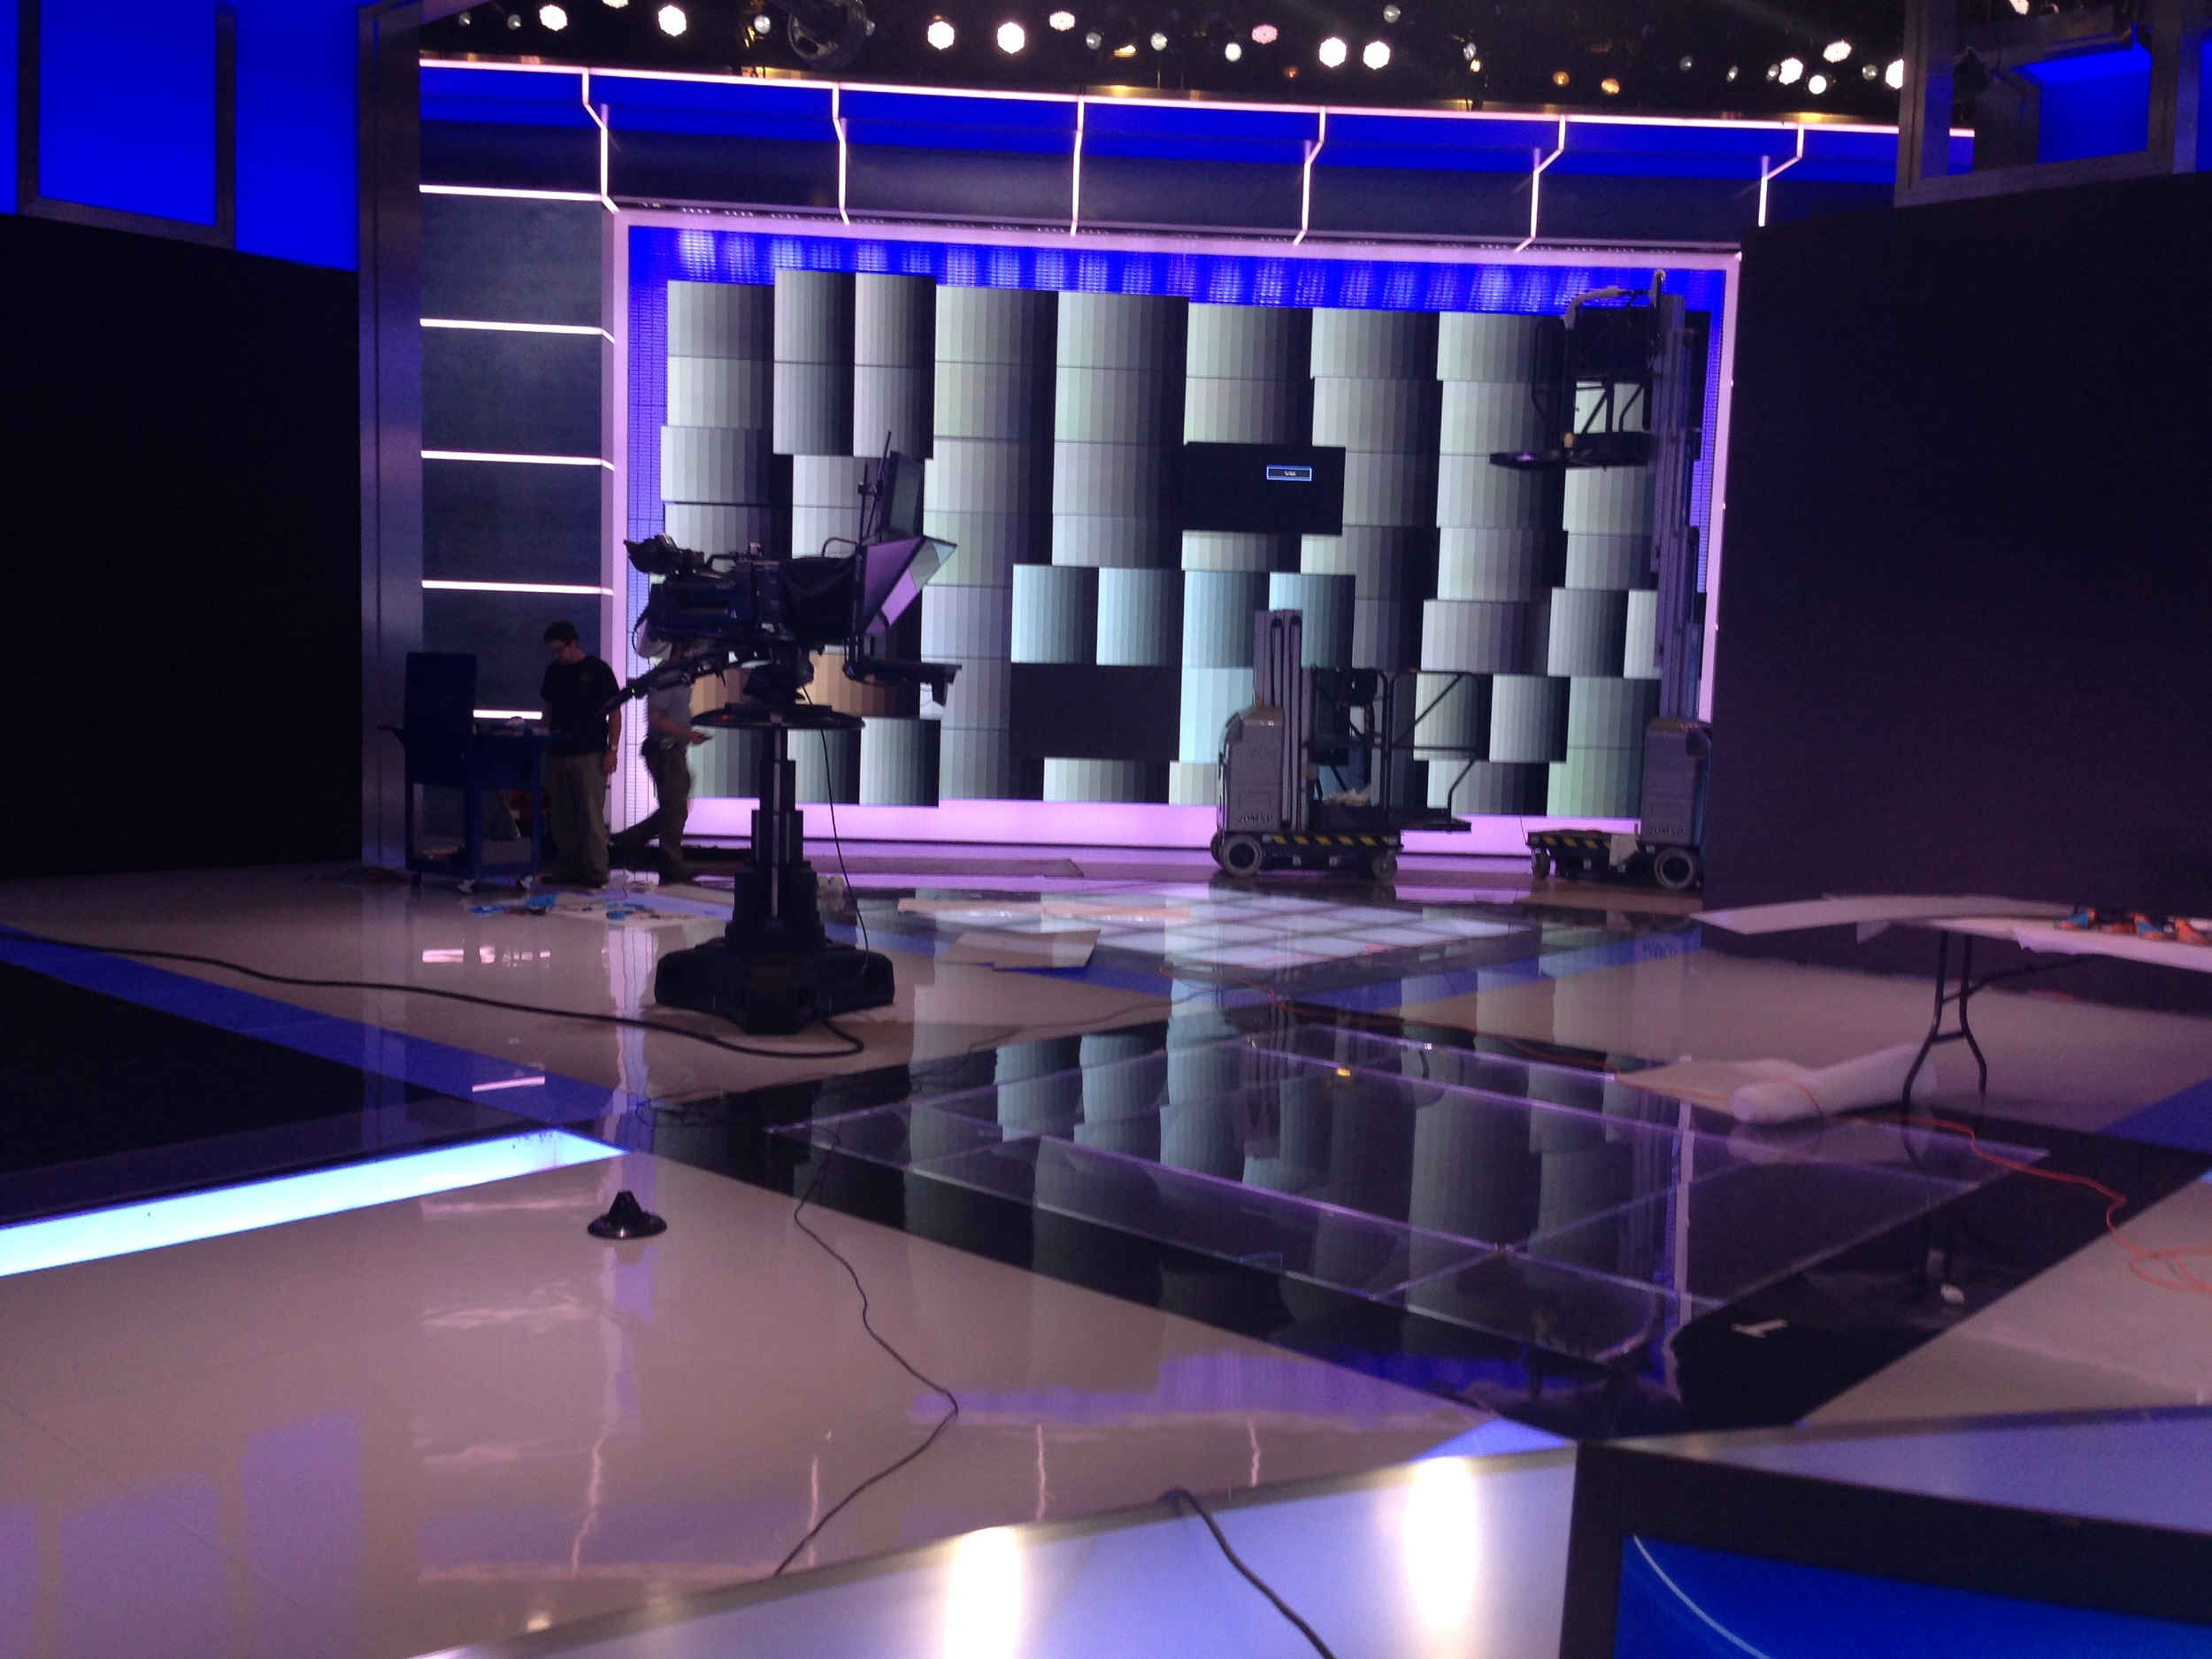 A look at calibrating 56 LCD and plasma monitors using Medialon to make sure the image is uniform and color-matched when seen through a broadcast camera.